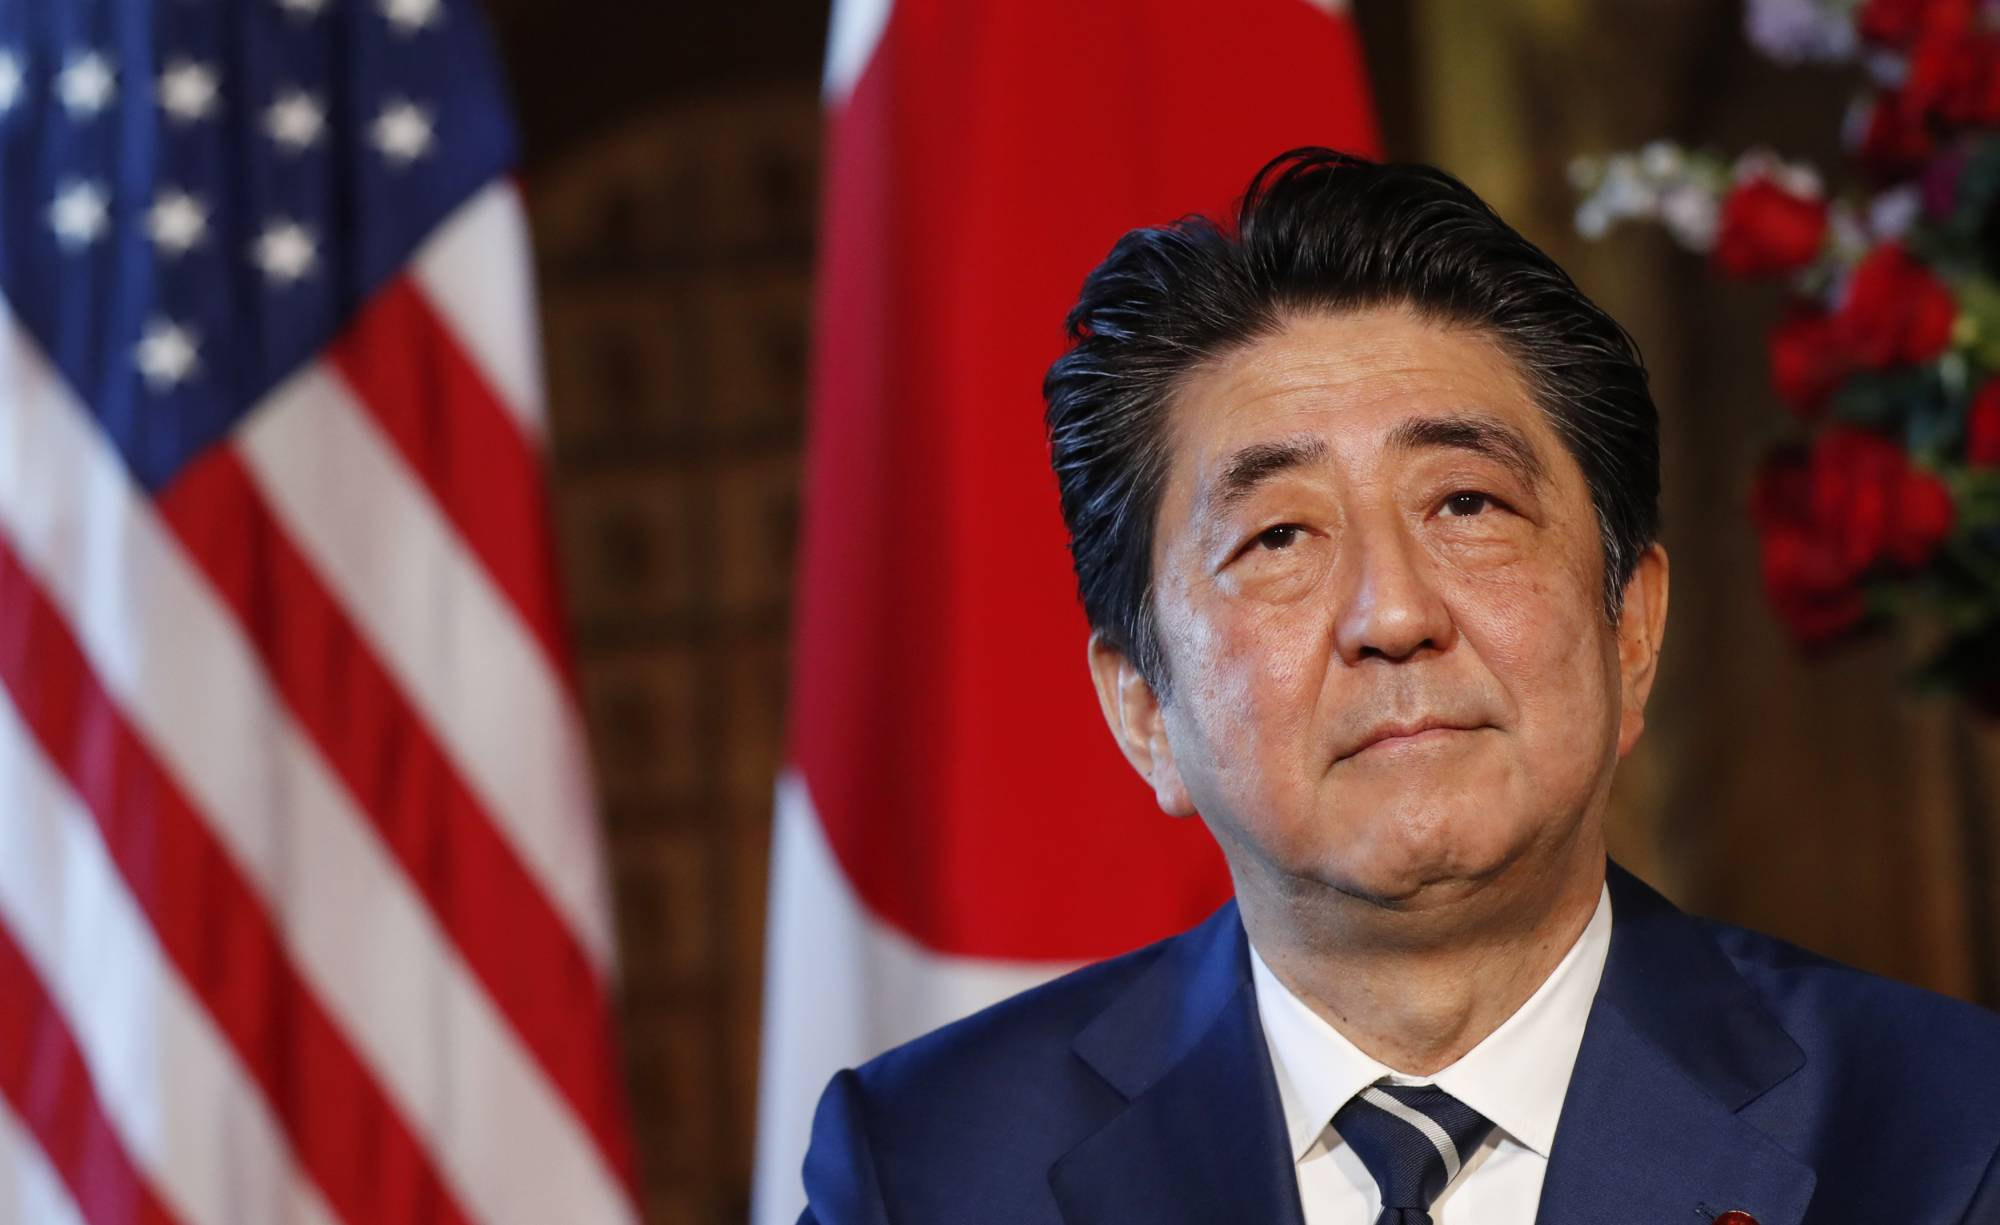 Prime Minister Shinzo Abe provided stability at the highest level of government during his tenure, which has allowed Tokyo to reclaim its place on the international stage.  | REUTERS